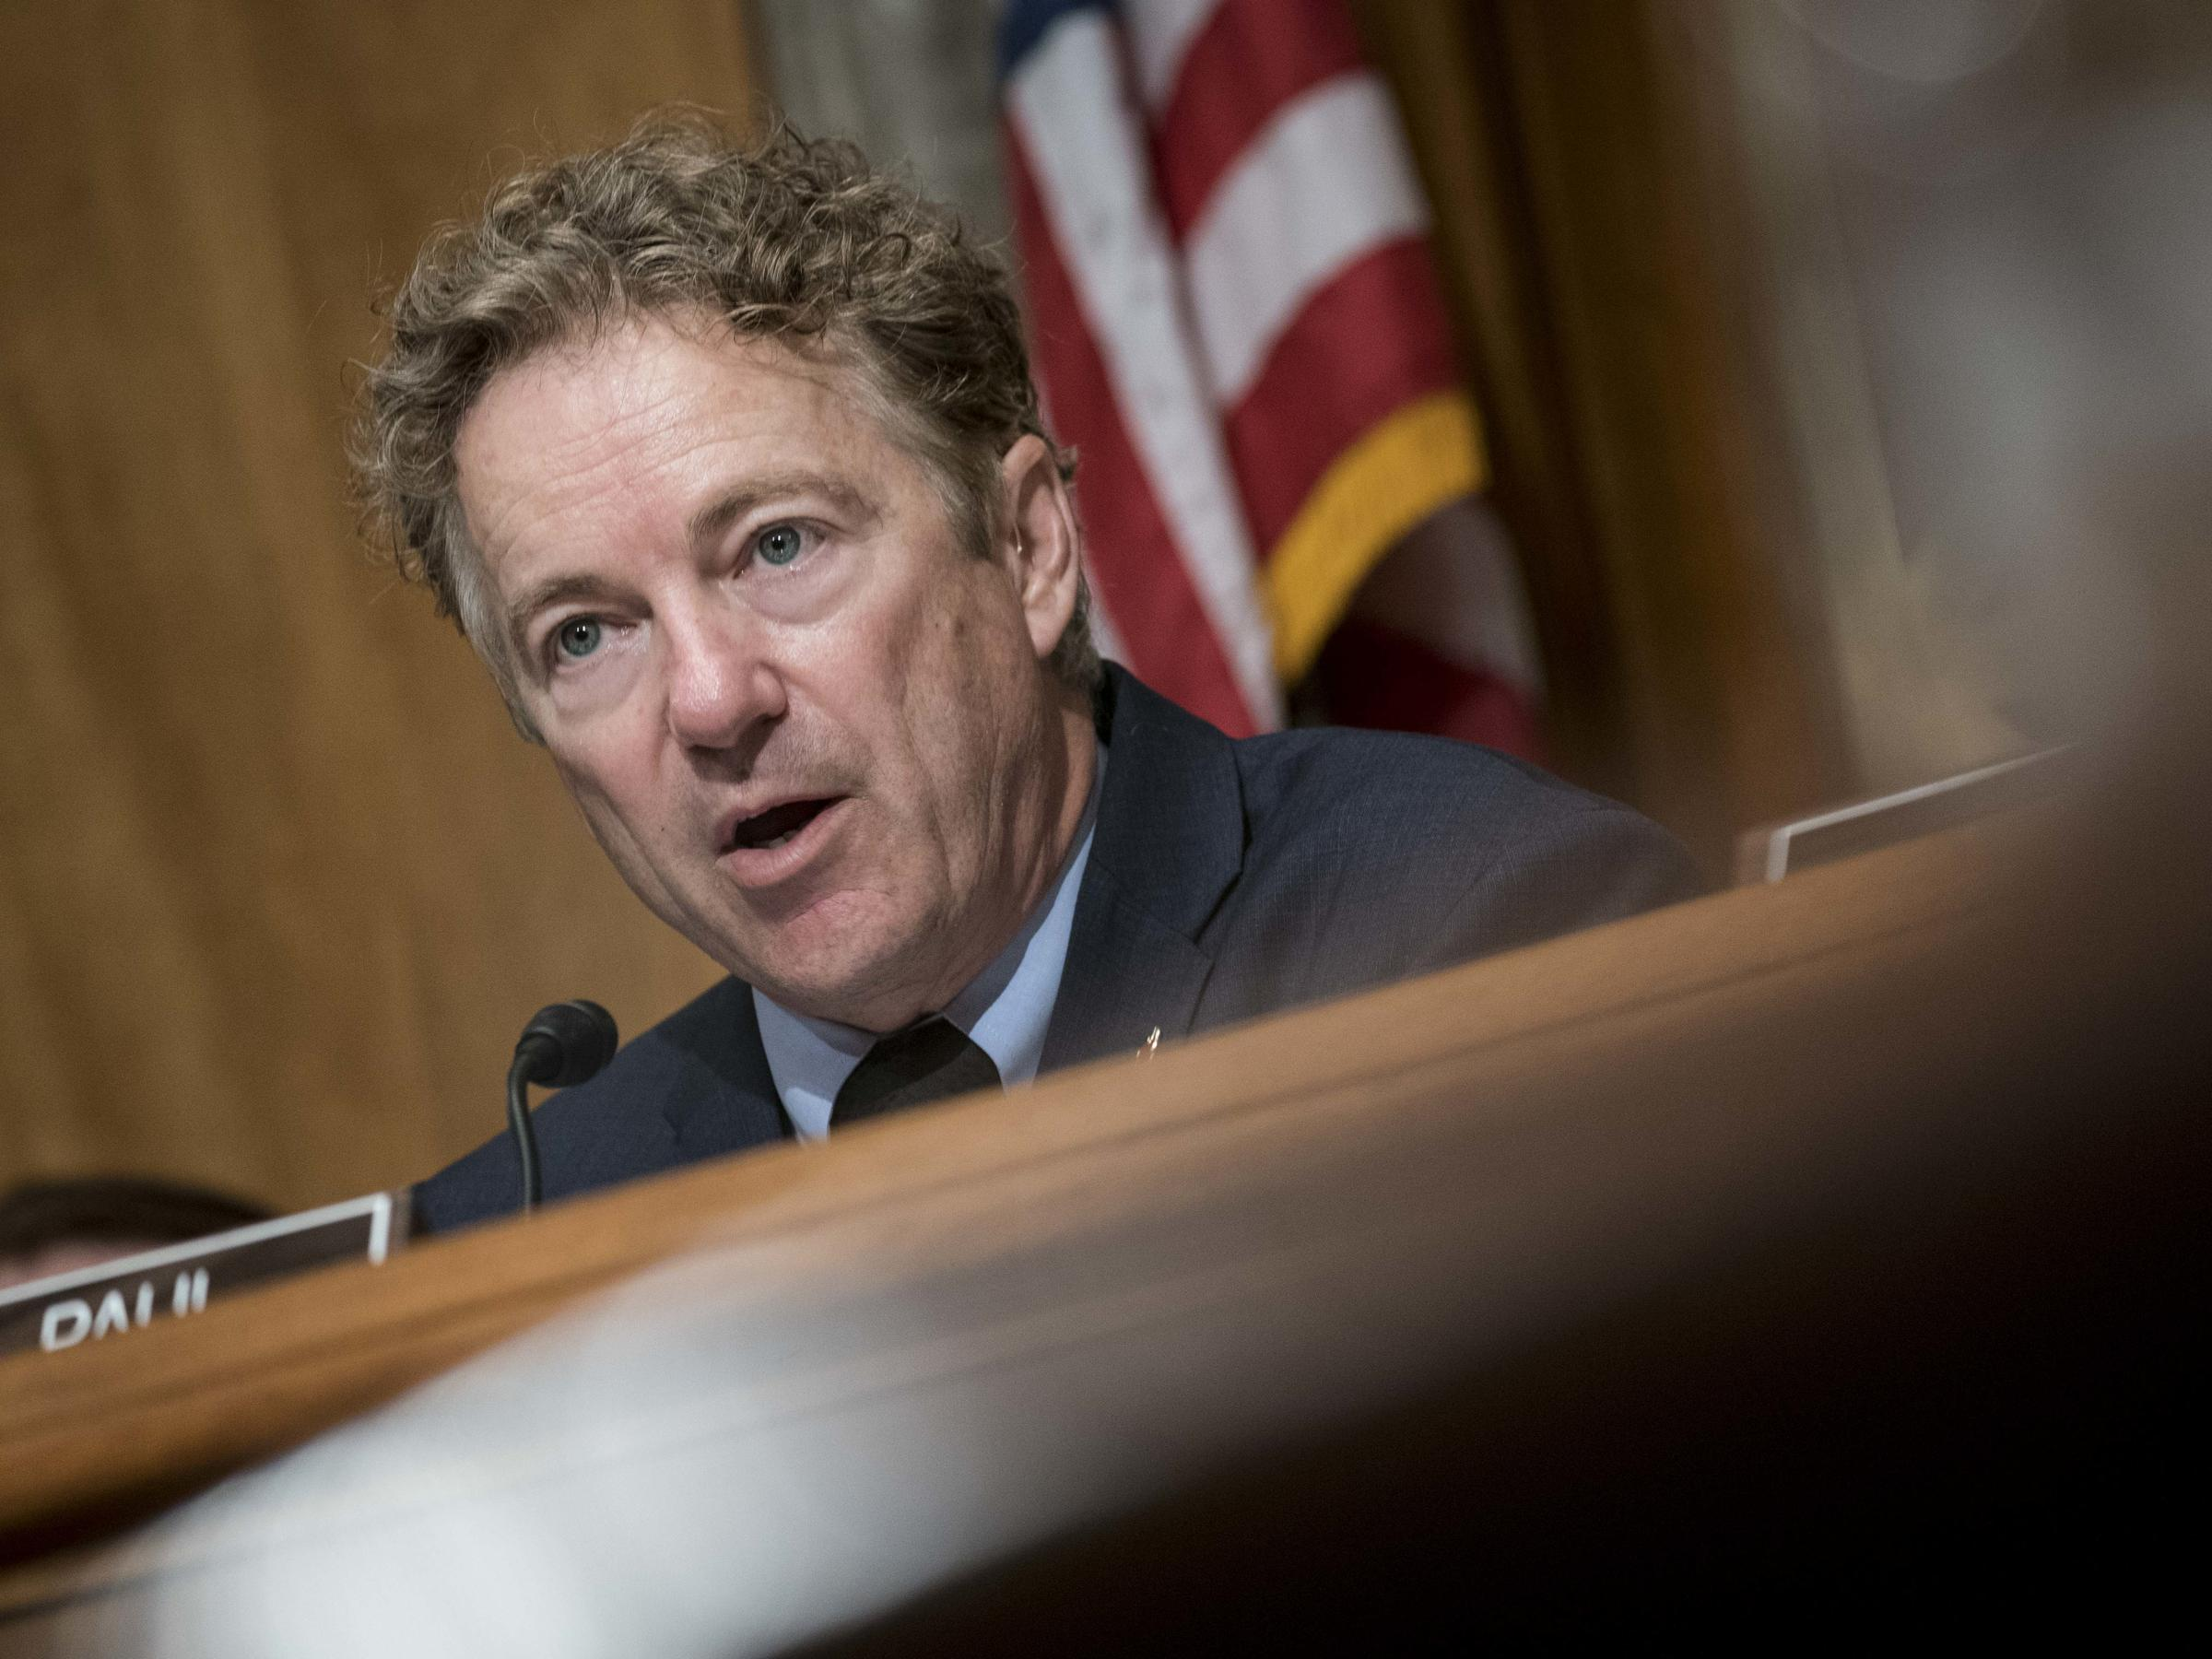 Senator Rand Paul tests positive for COVID-19